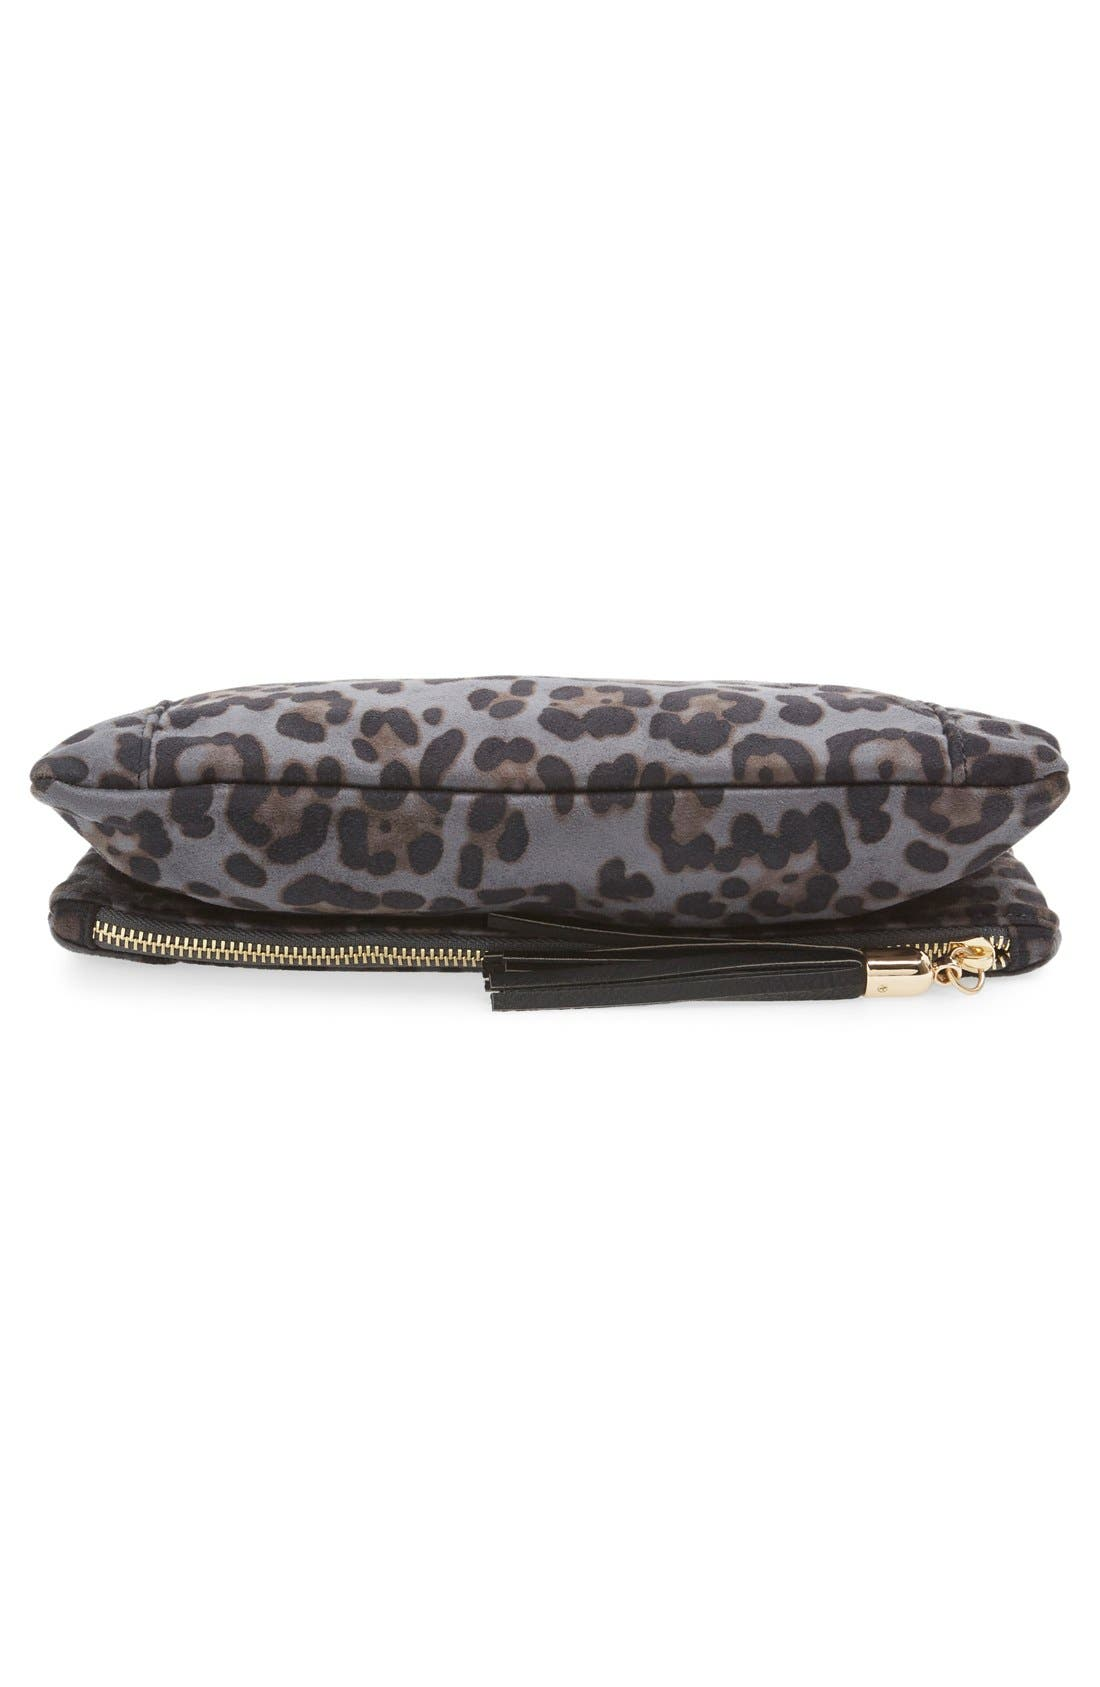 'Tasia' Print Foldover Clutch,                             Alternate thumbnail 4, color,                             020